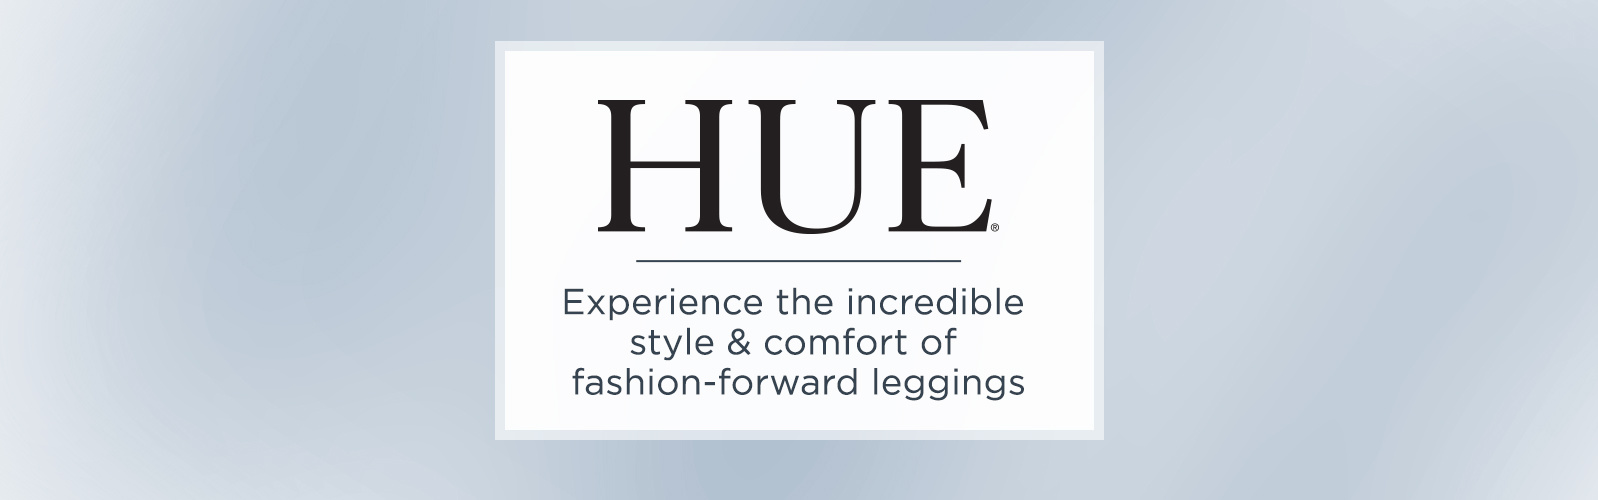 HUE - Experience the incredible style & comfort of fashion-forward leggings